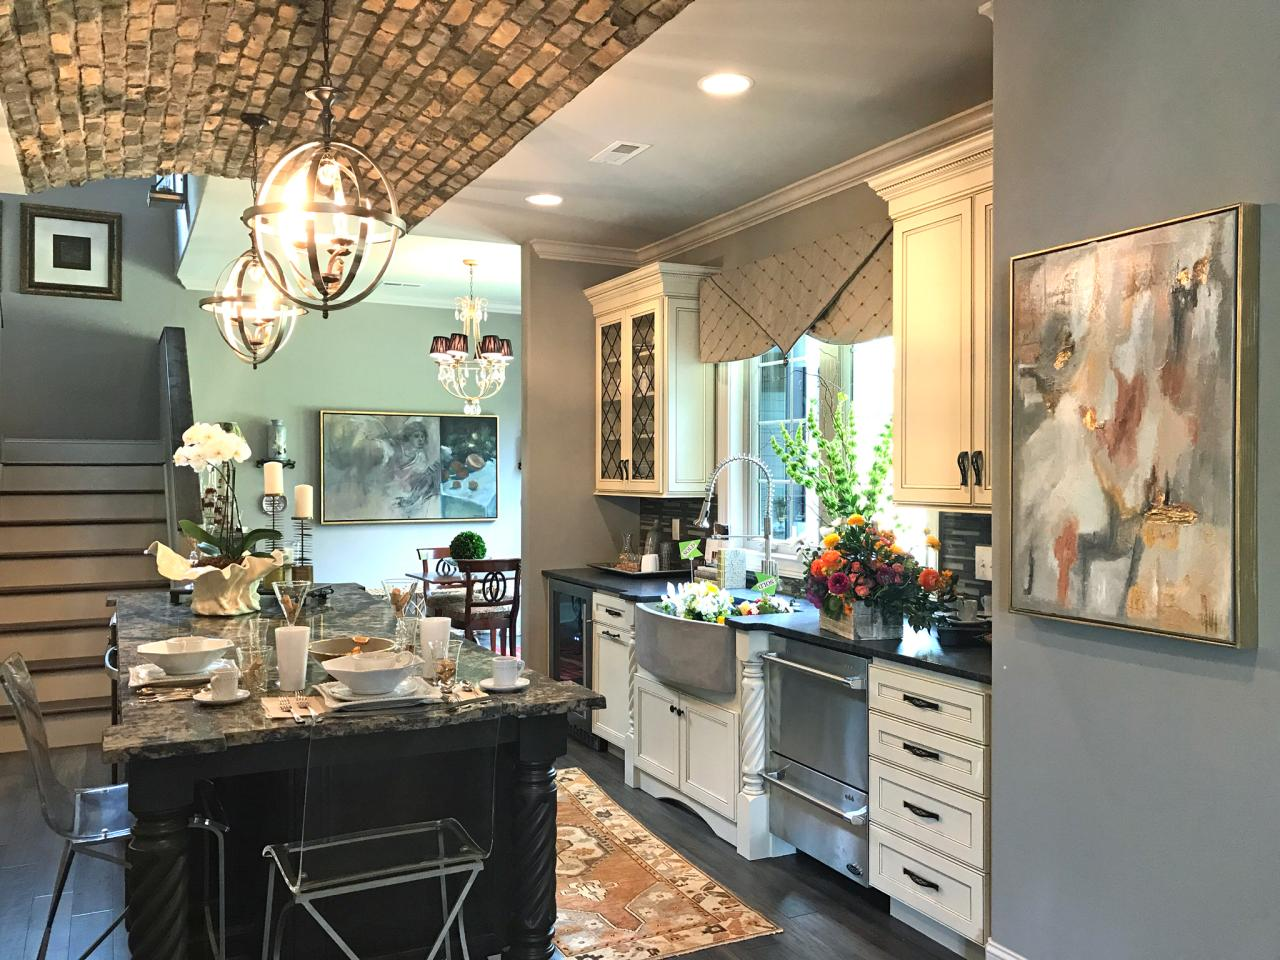 Kitchen Design Store Knoxville Tn Tour The 2017 Knoxville Symphony League Show House Hgtv S